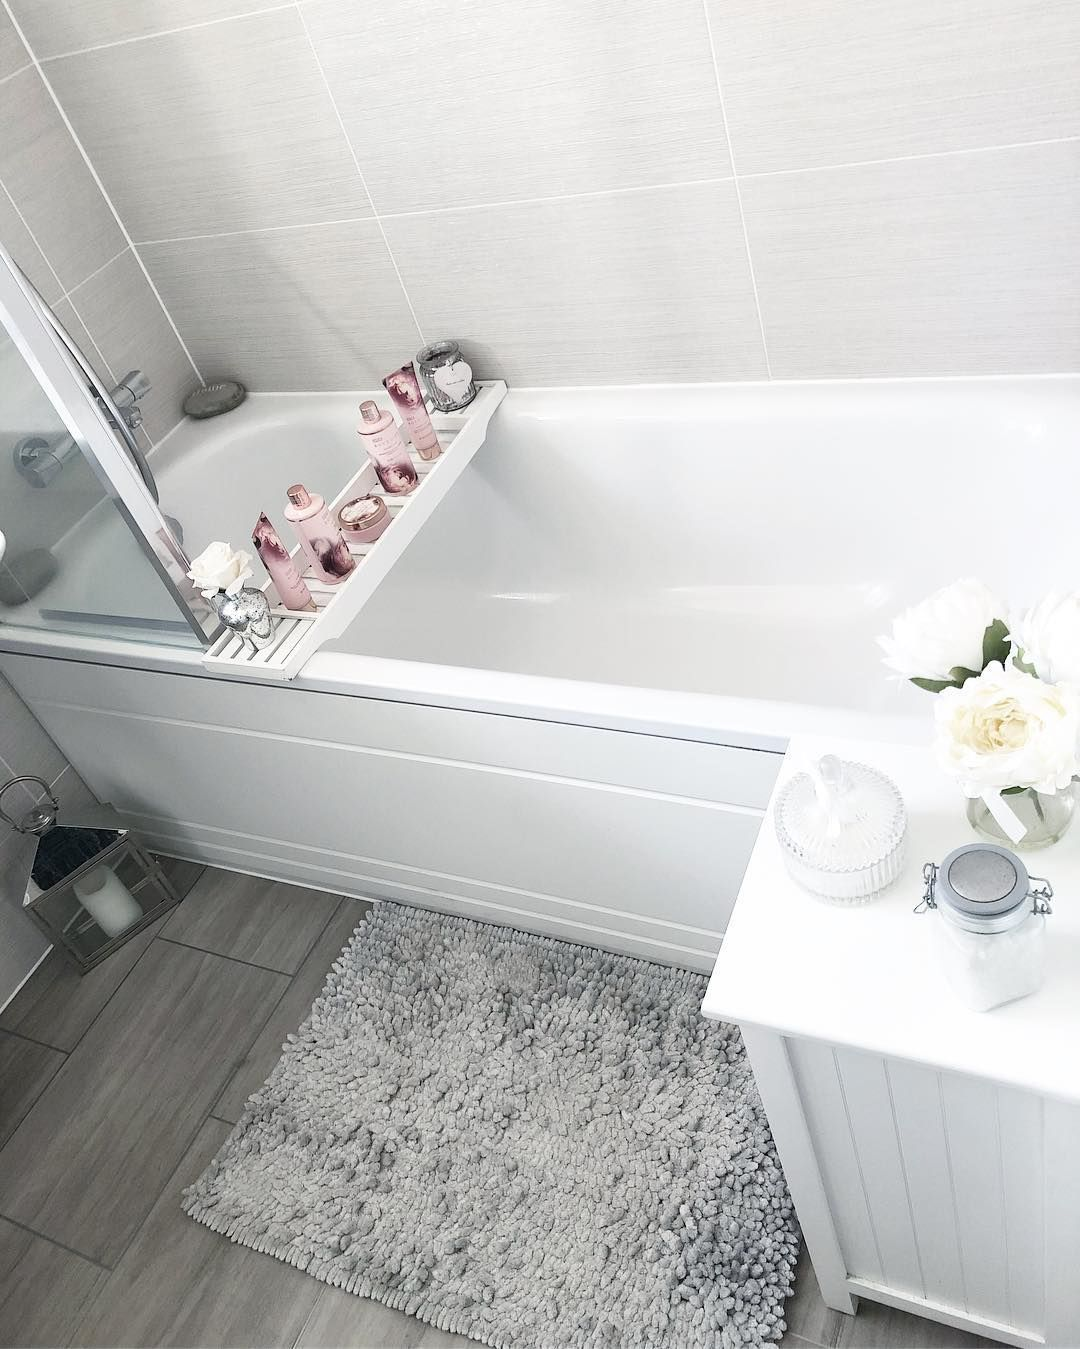 Instagram Cleaning Icon Mrs Hinch Reveals Full List Of Essential Products She Uses Birmingham L In 2020 Small Bathroom Furniture Bathroom Design Small Bathroom Decor